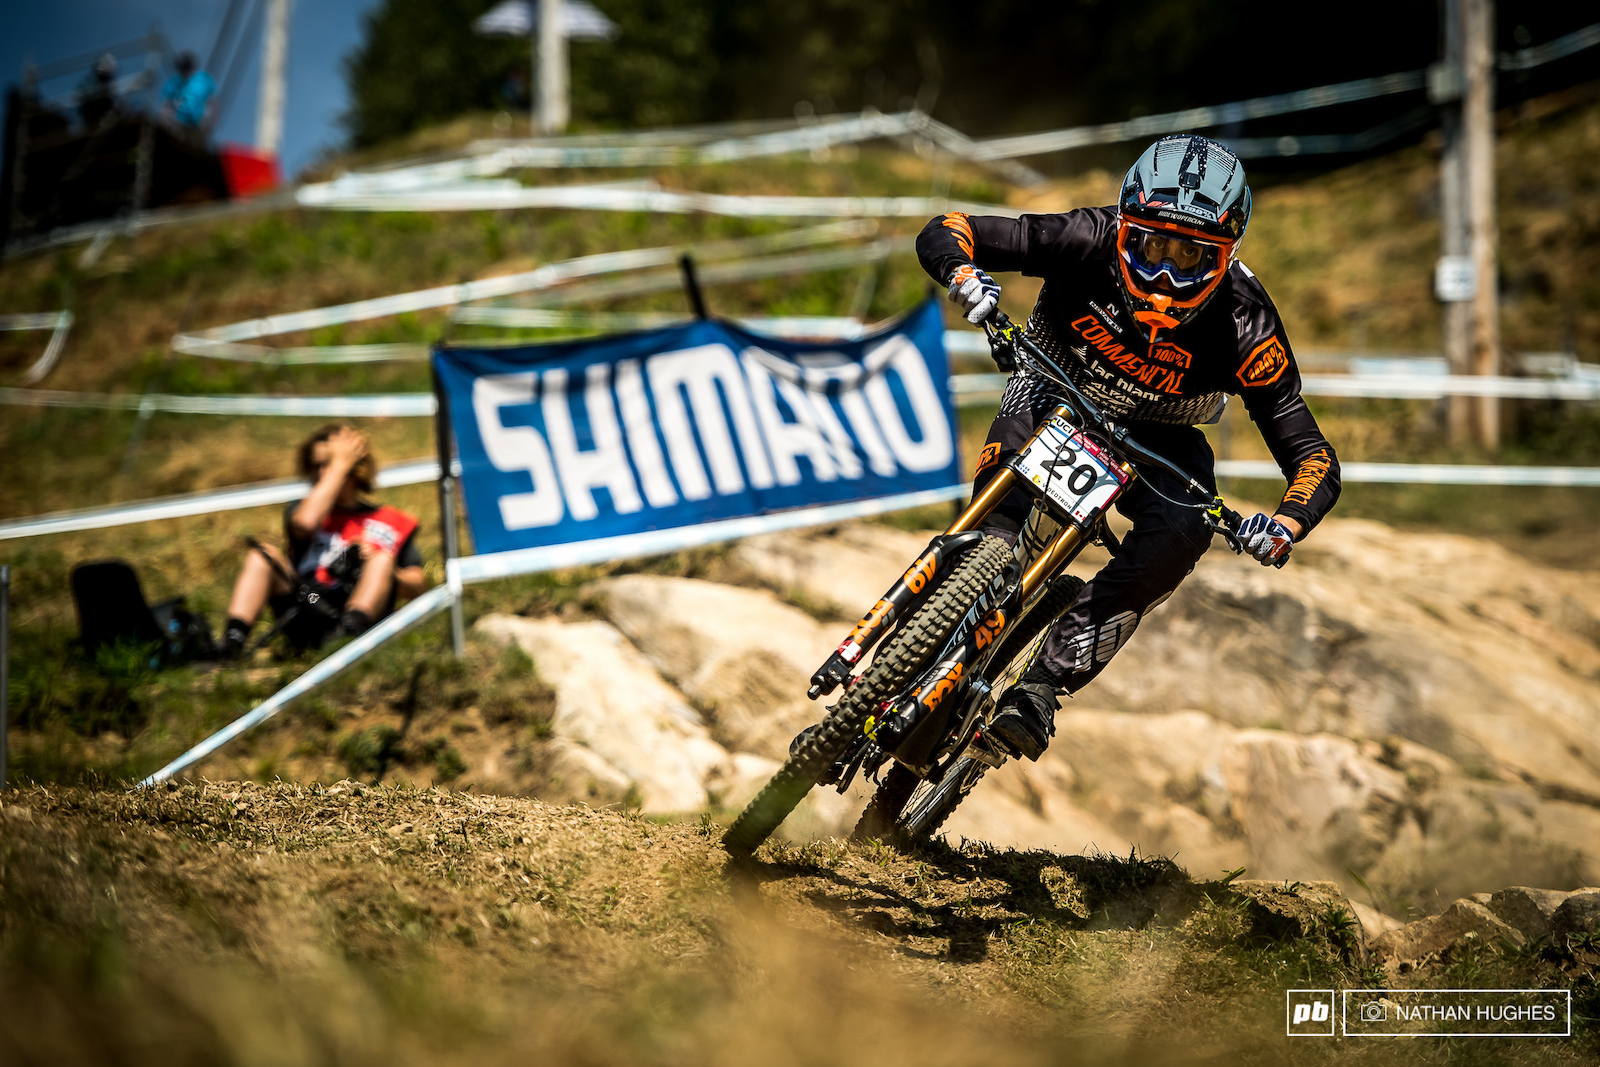 Amaury Pierron is always on pace and making team France look good. Another top 20 for the Lac Blanc pinner.